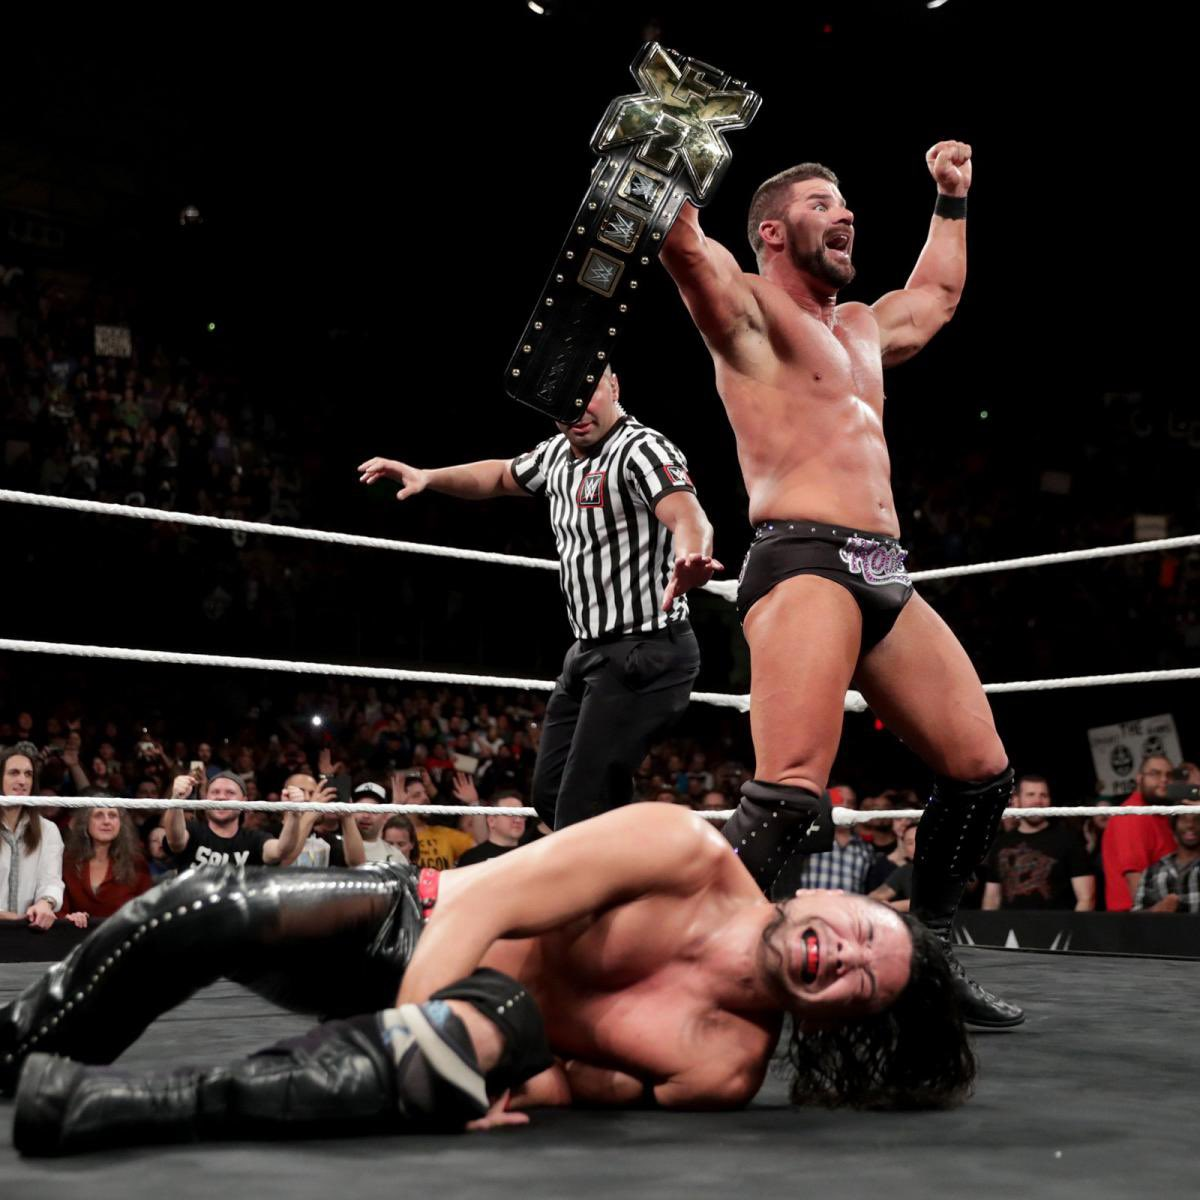 In nearly 30 minutes of action at TakeOver: San Antonio.. @RealRobertRoode defeated Shinsuke Nakamura for the #NXT Championship! Glorious!!